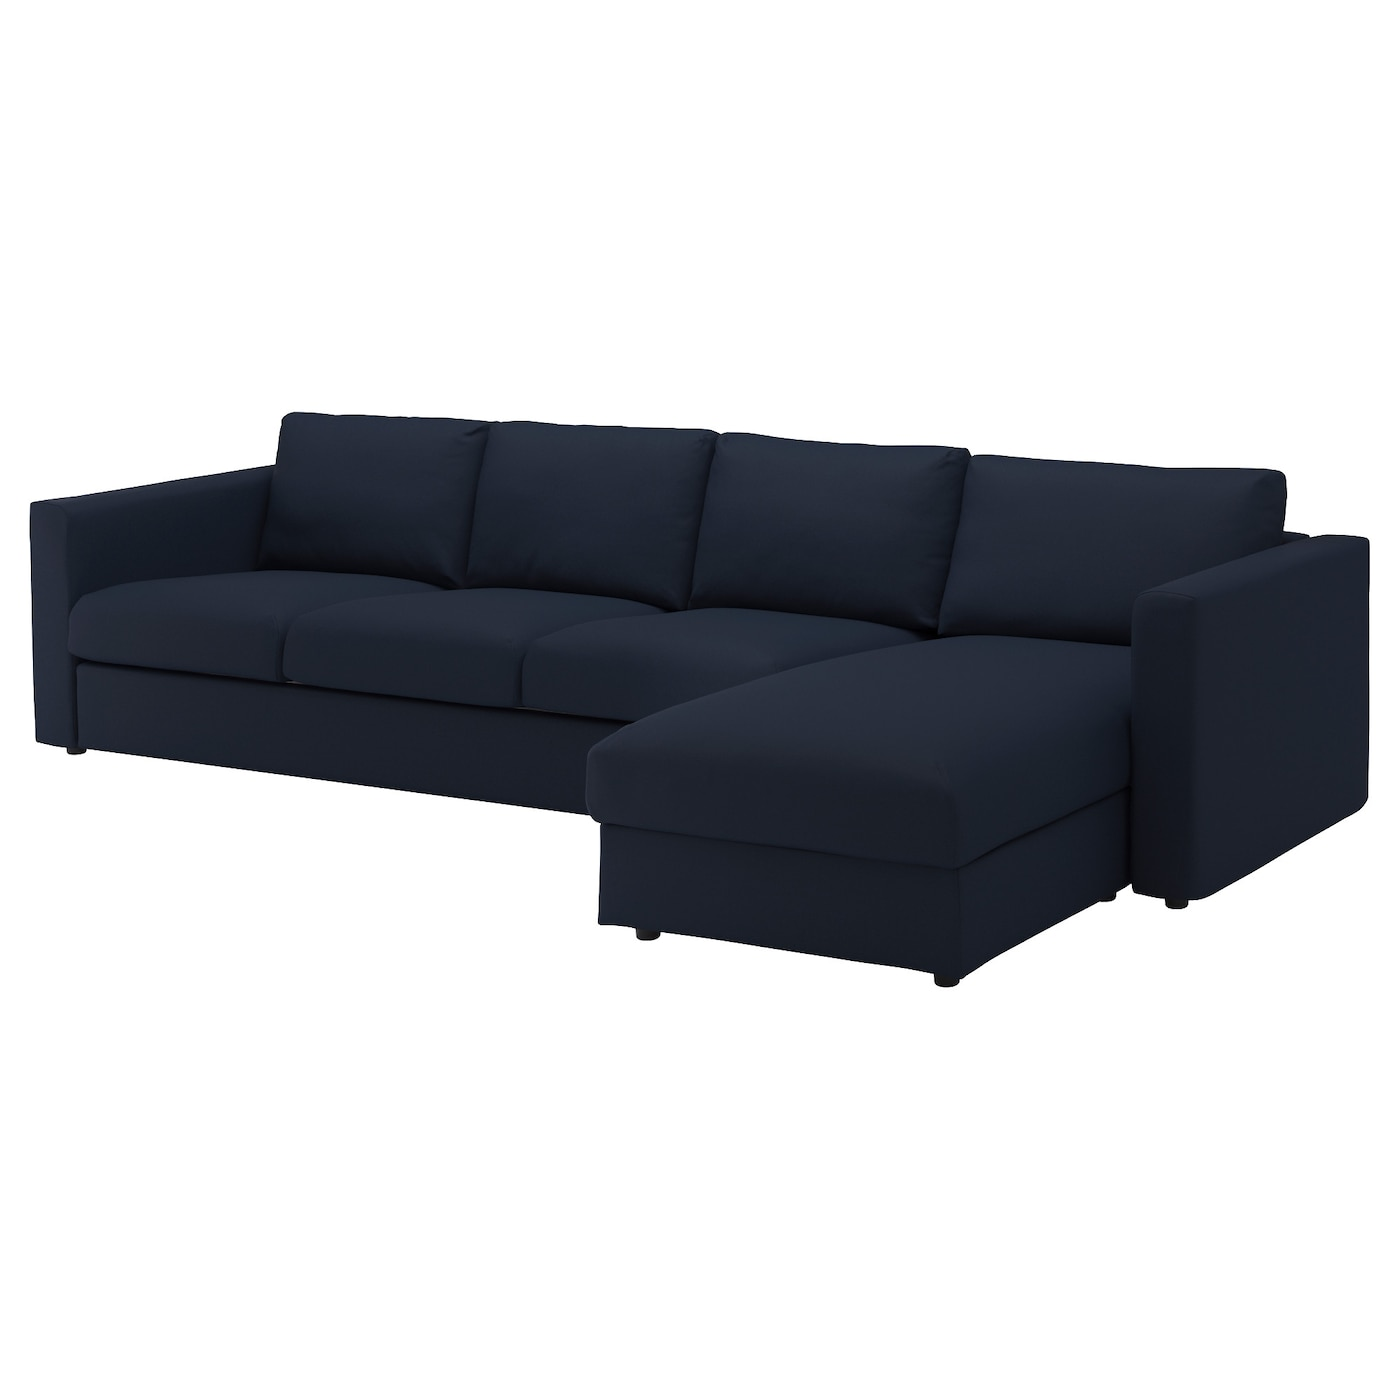 Incroyable IKEA VIMLE 4 Seat Sofa The Cover Is Easy To Keep Clean Since It Is